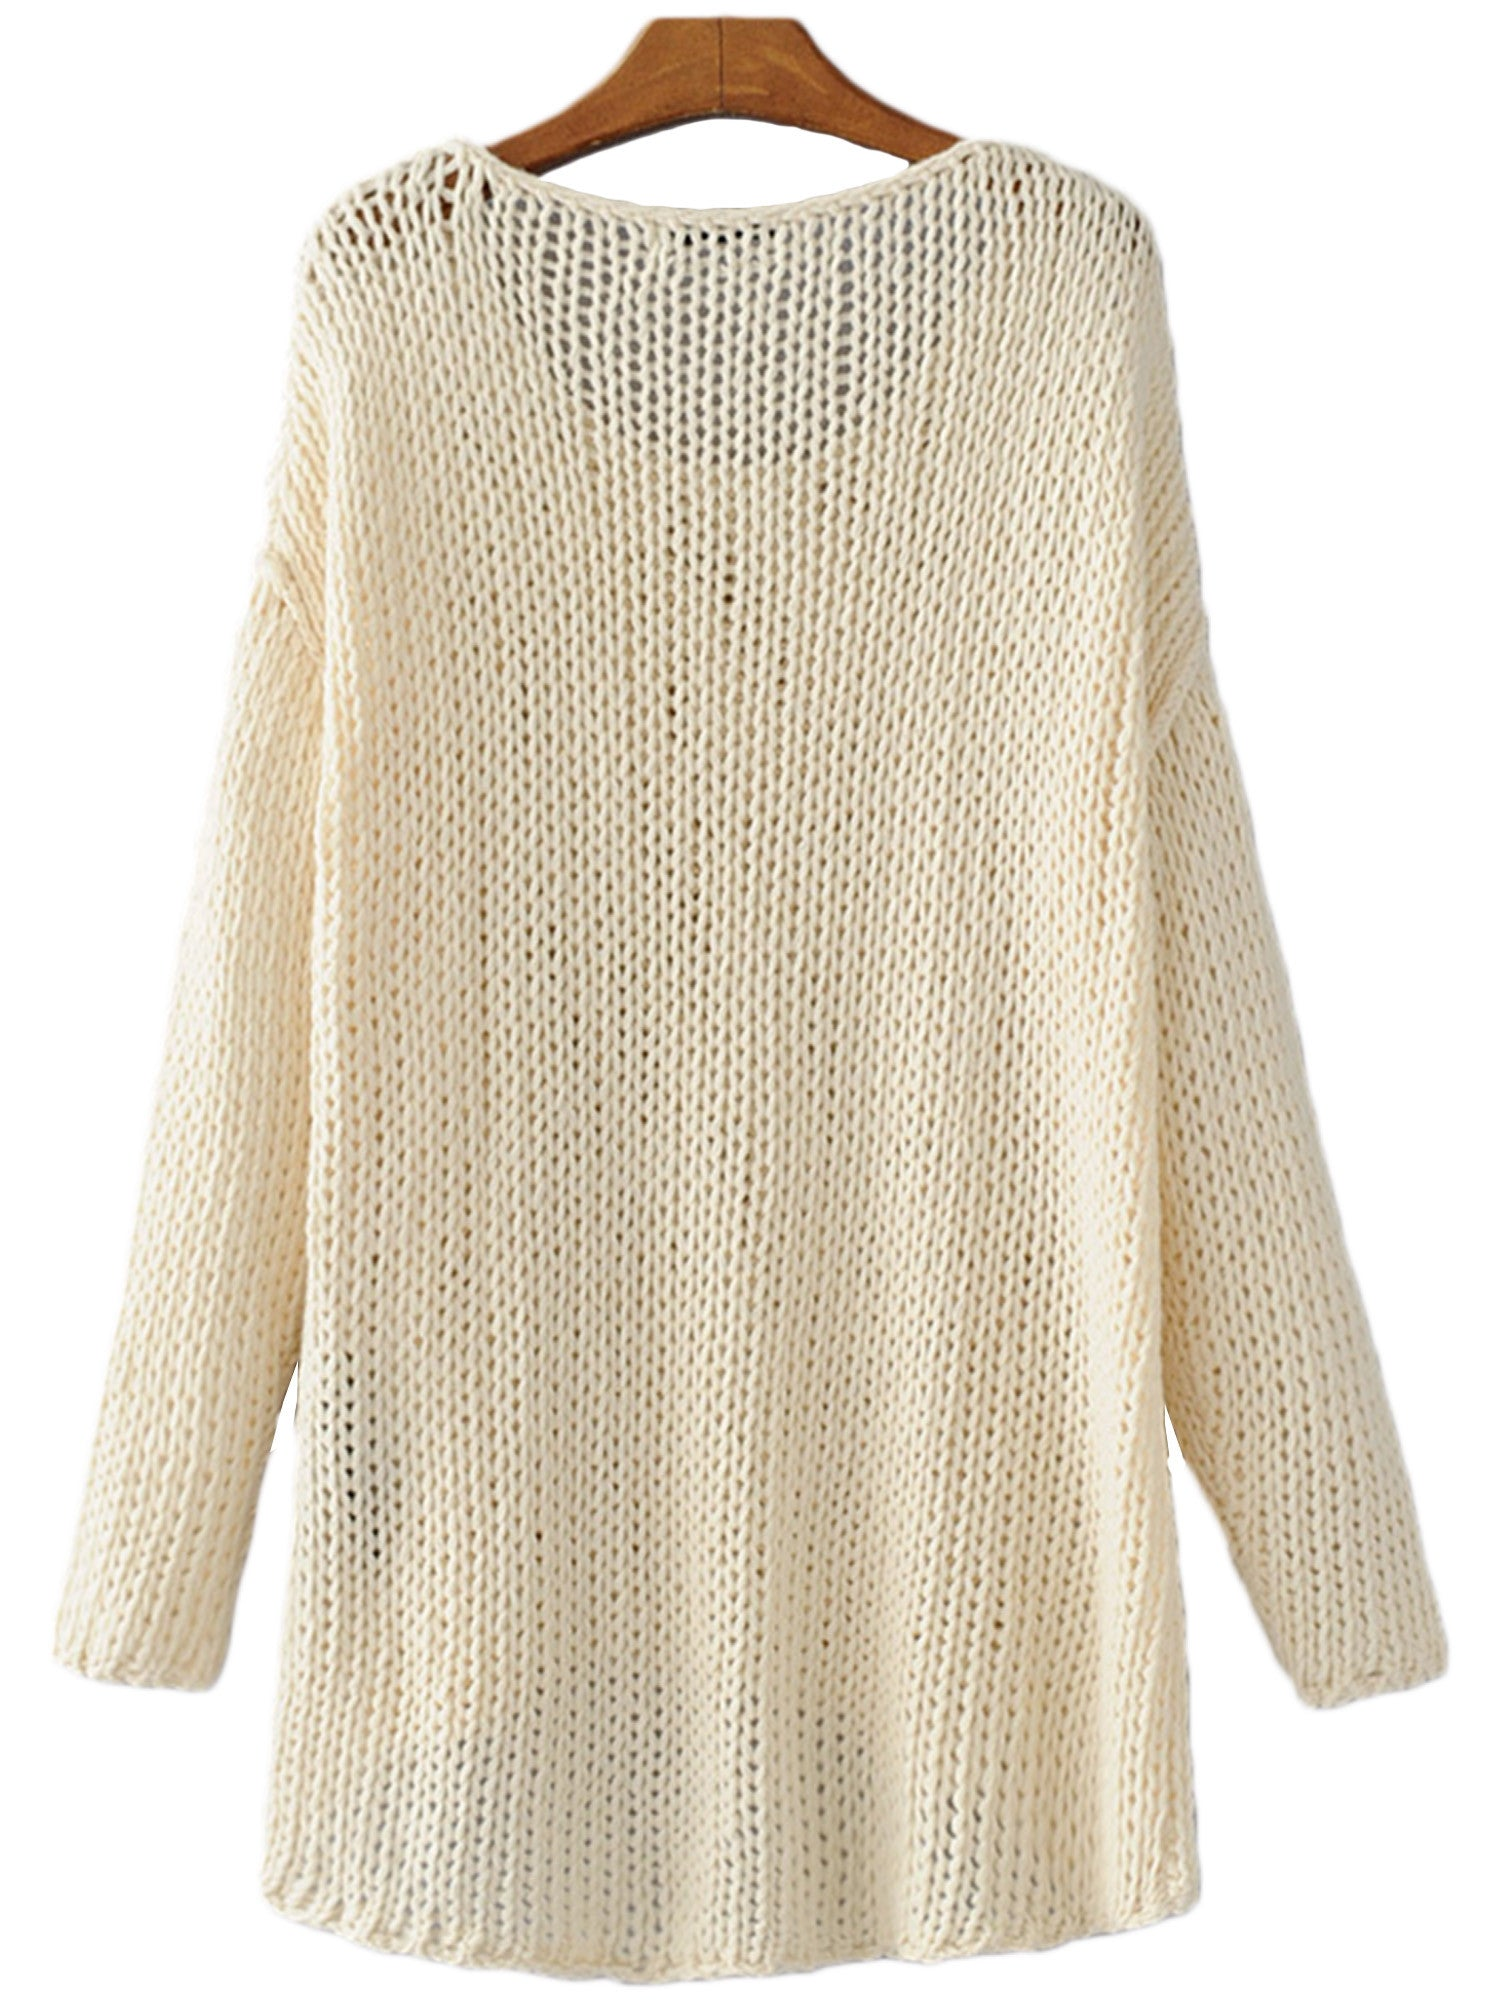 'Tegan' Ivory Long Sleeve Crewneck Sweater